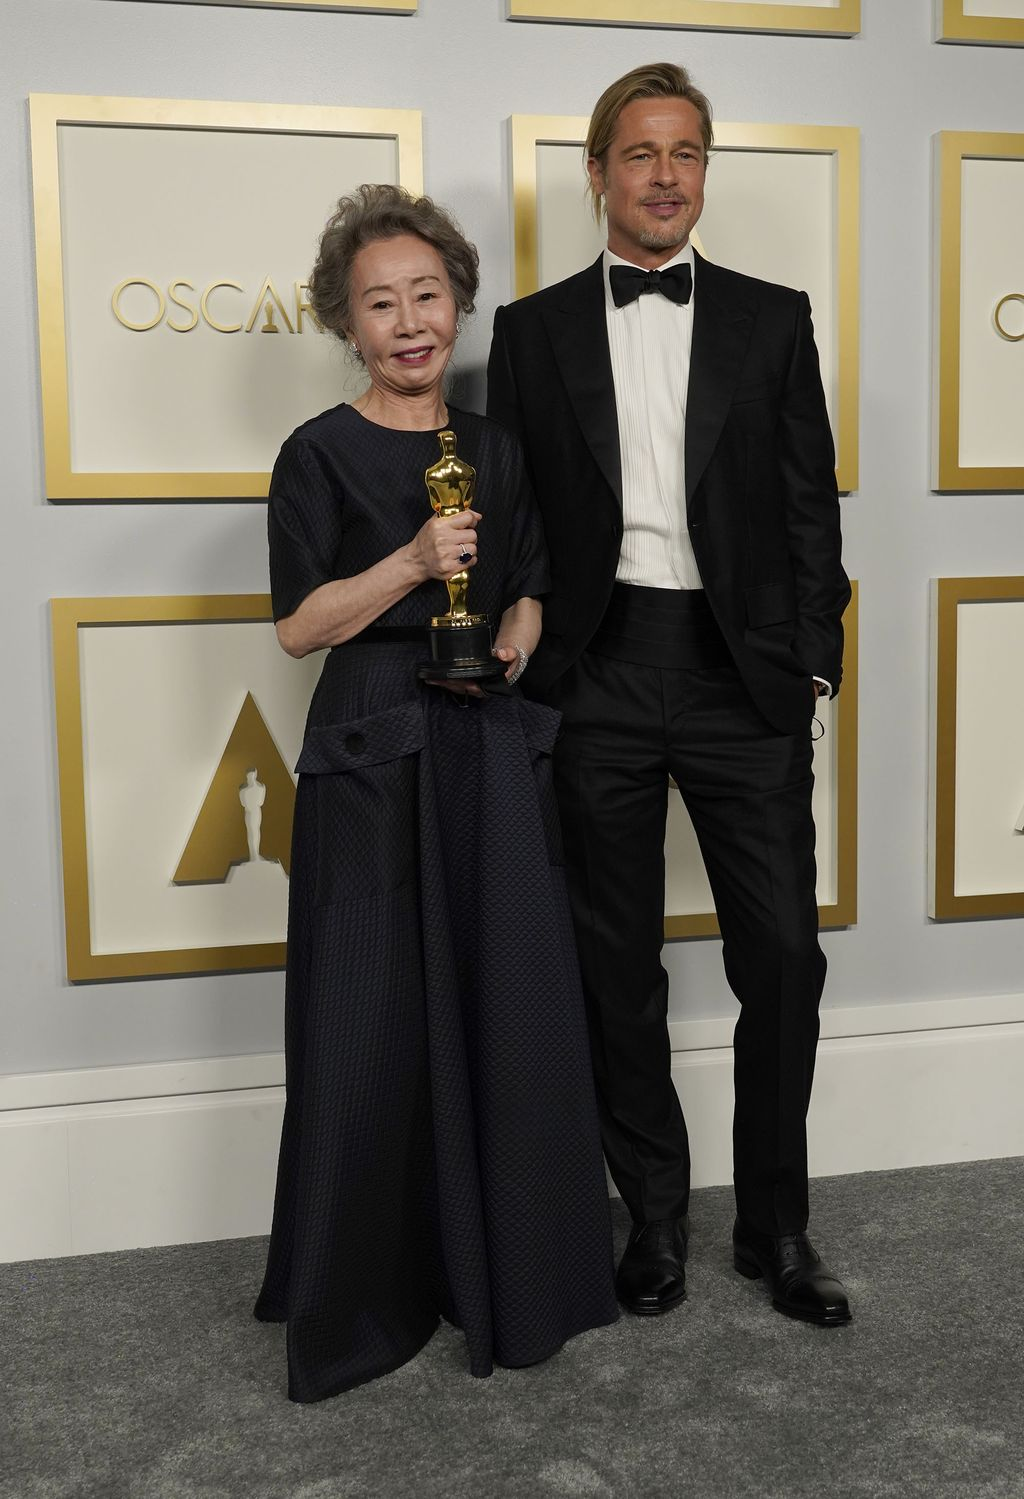 Brad Pitt, right, poses with Yuh-Jung Youn, winner of the award for best actress in a supporting role for